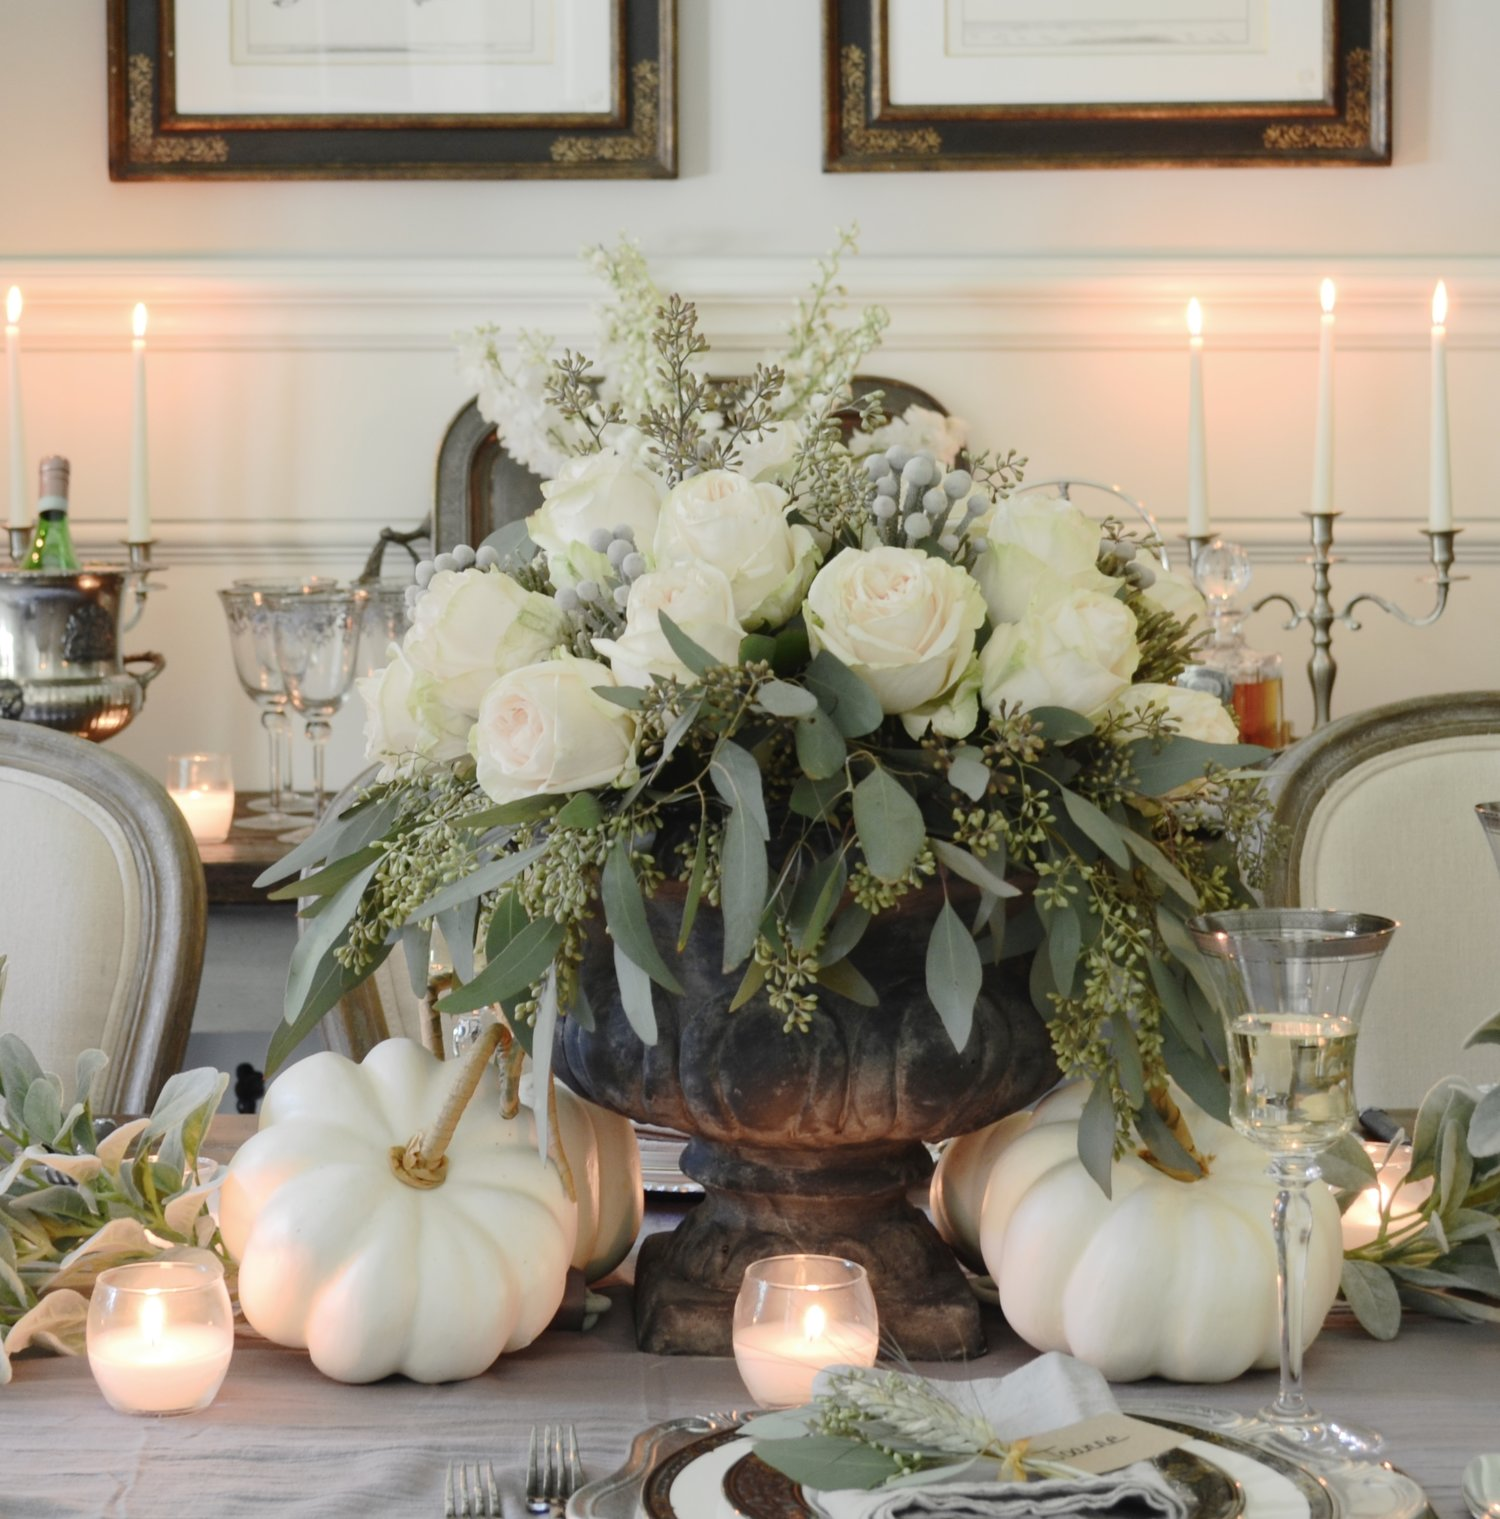 Creative Ideas for Fall or Thanksgiving Table Settings and Home Decor 4